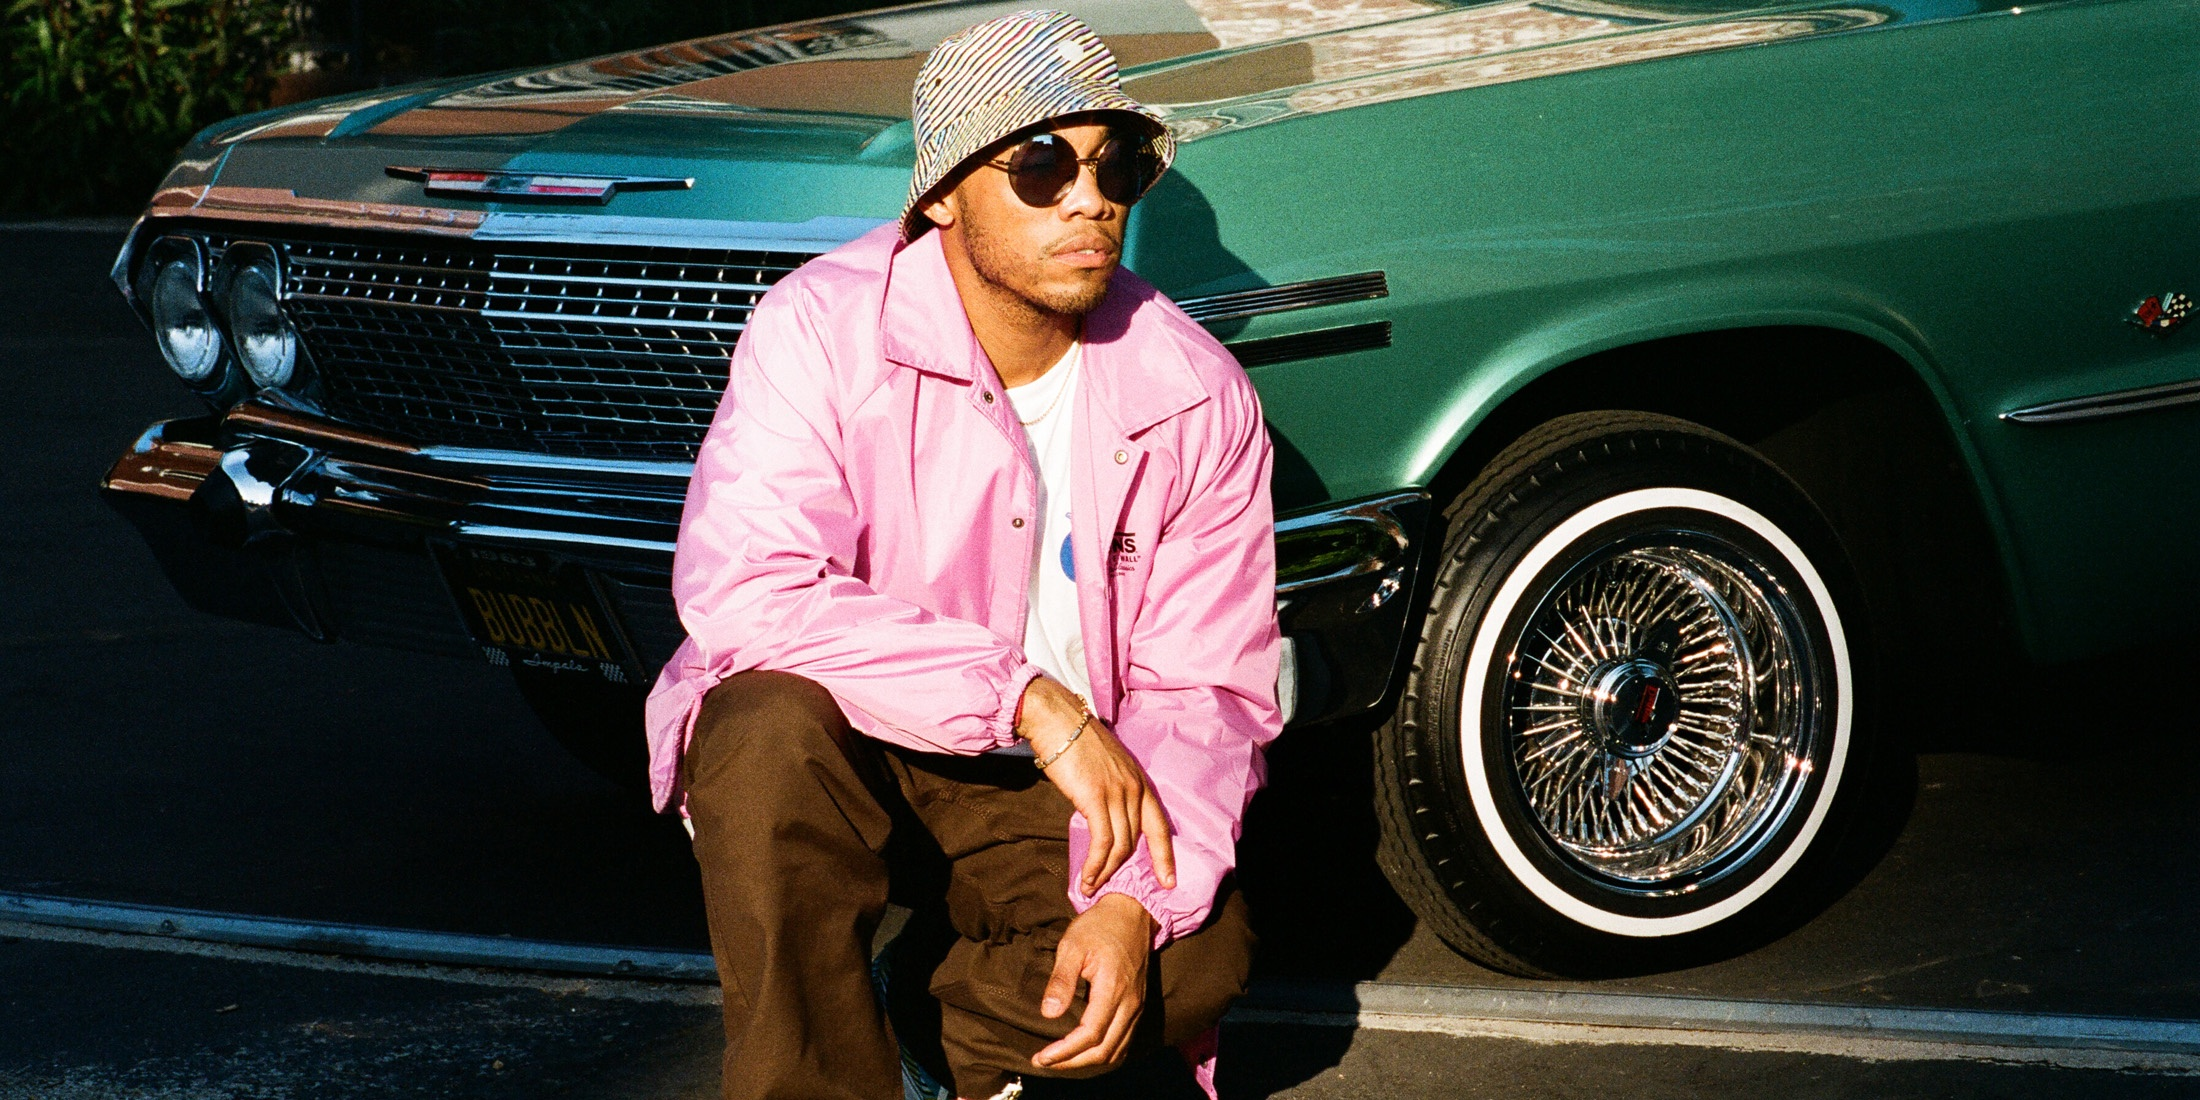 Anderson .Paak announced as Vans' first Global Music Ambassador with exclusive Vans collection